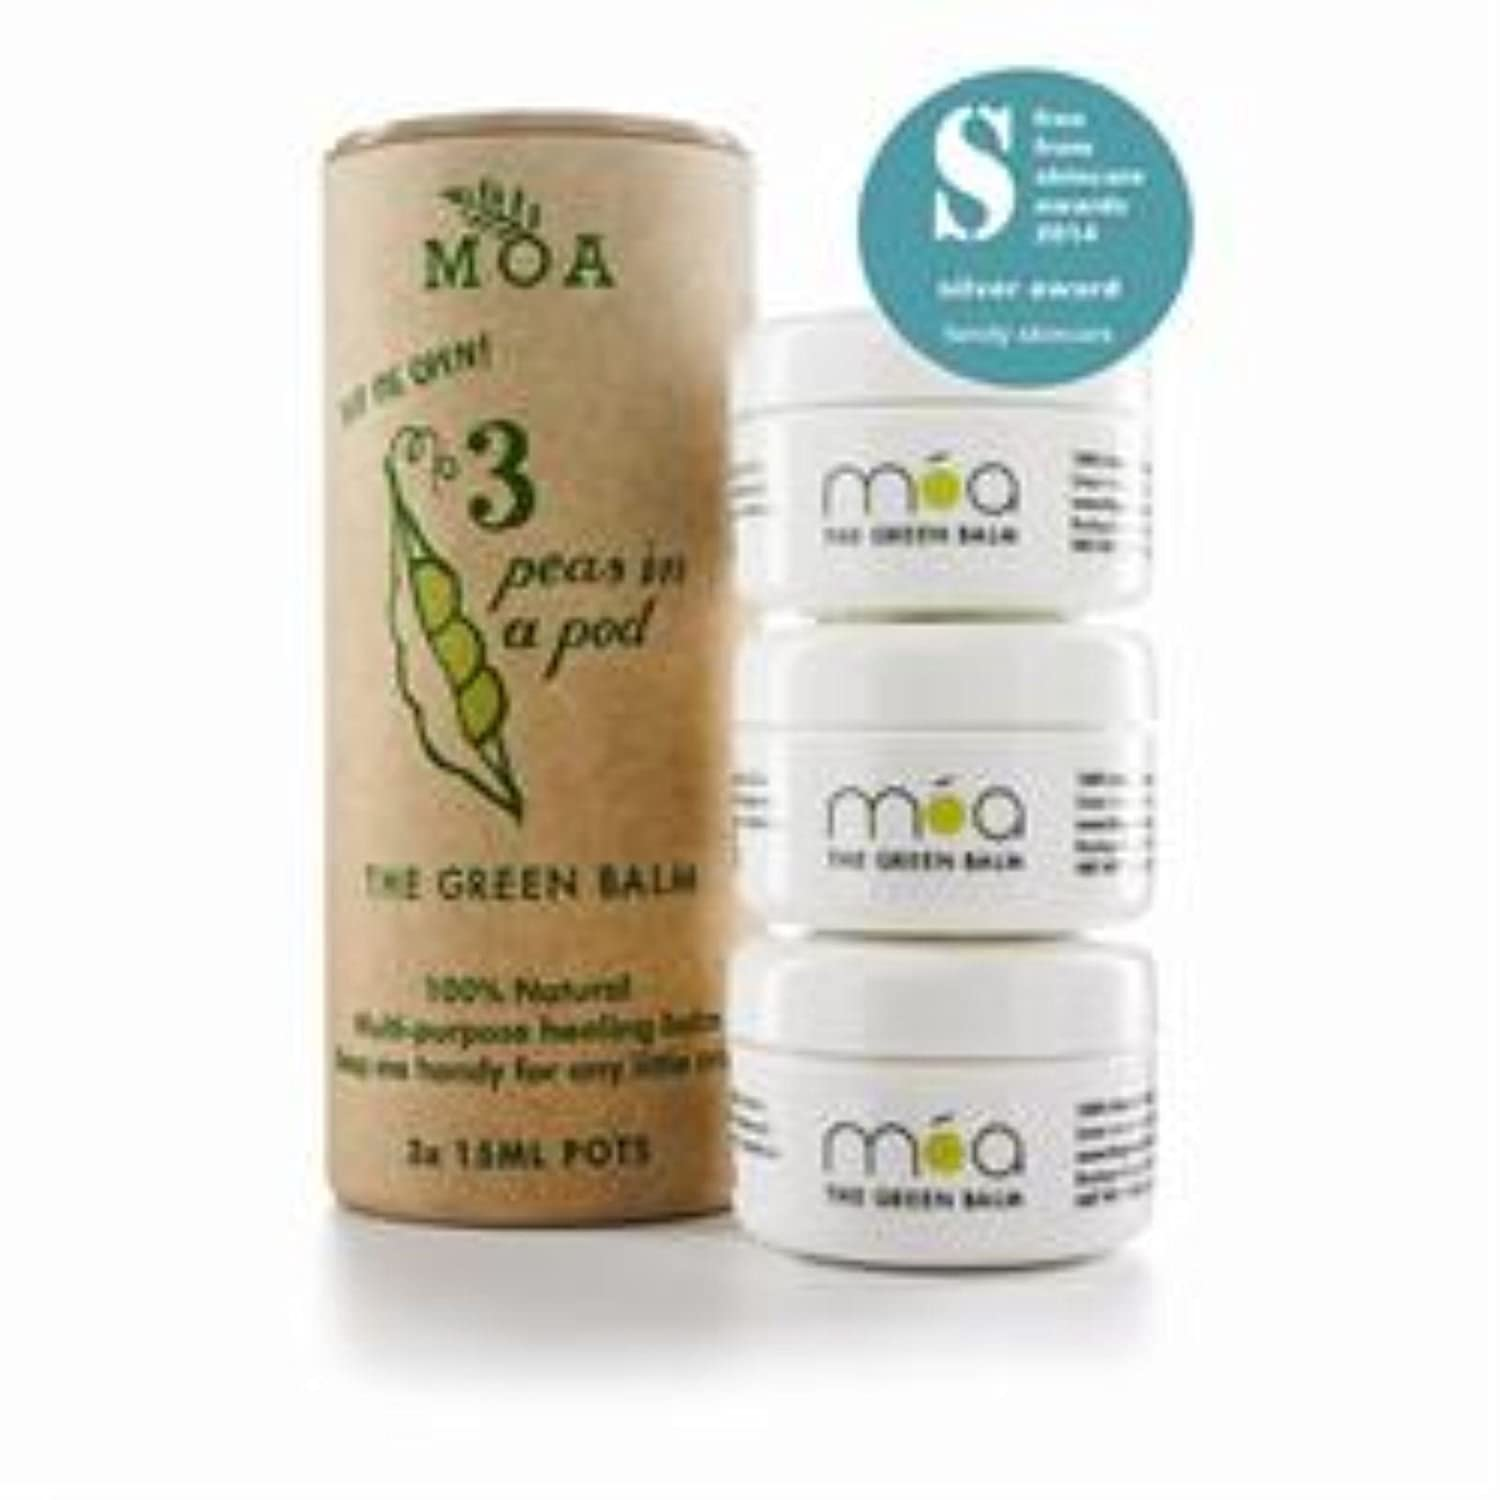 MOA Green Balm Peas in a Pod - The Green Balm 3 Pack (order 6 for trade outer)